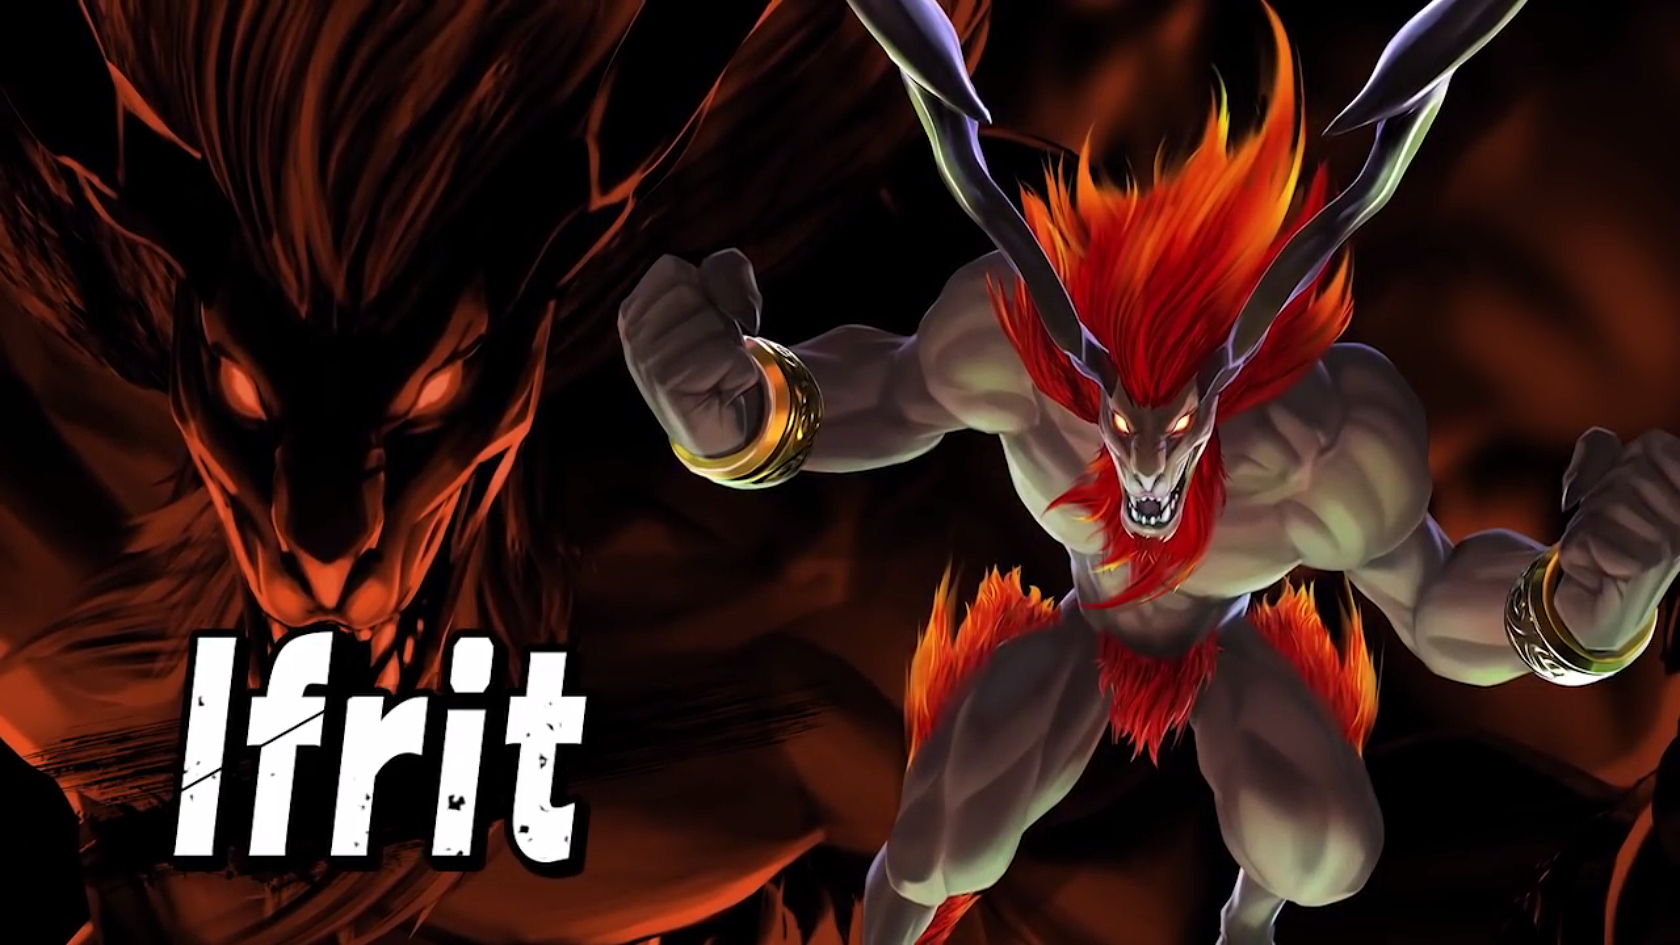 Ifrit | Smashpedia | FANDOM powered by Wikia